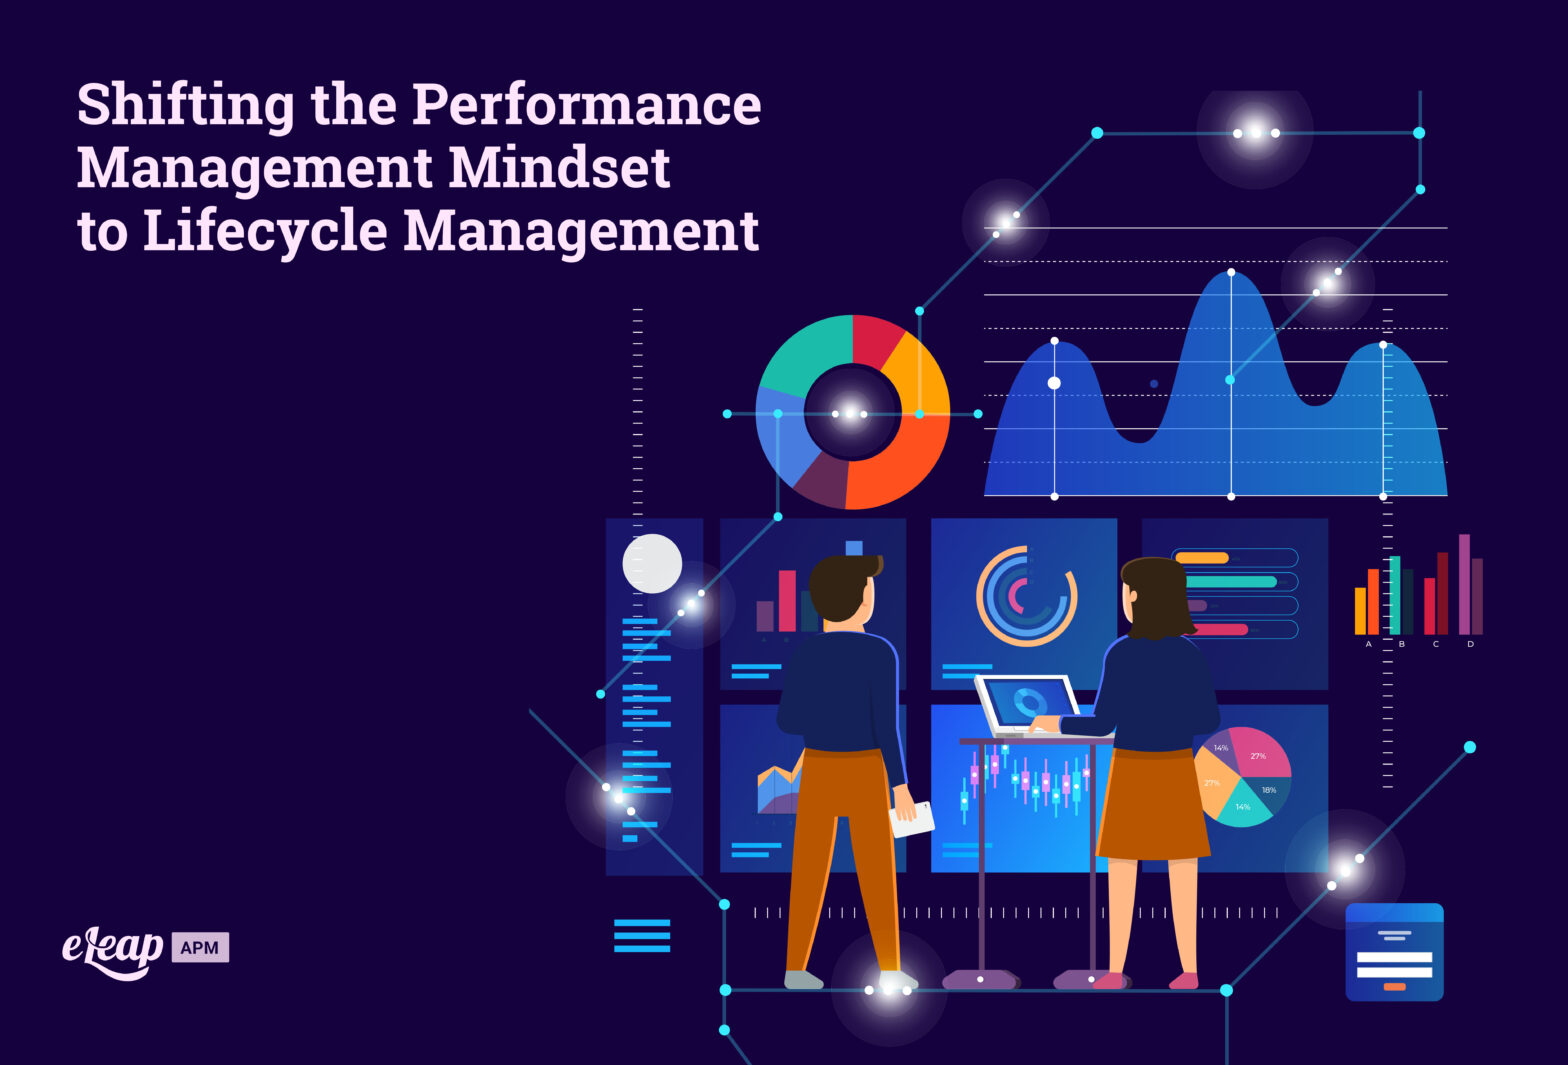 Shifting the Performance Management Mindset to Lifecycle Management